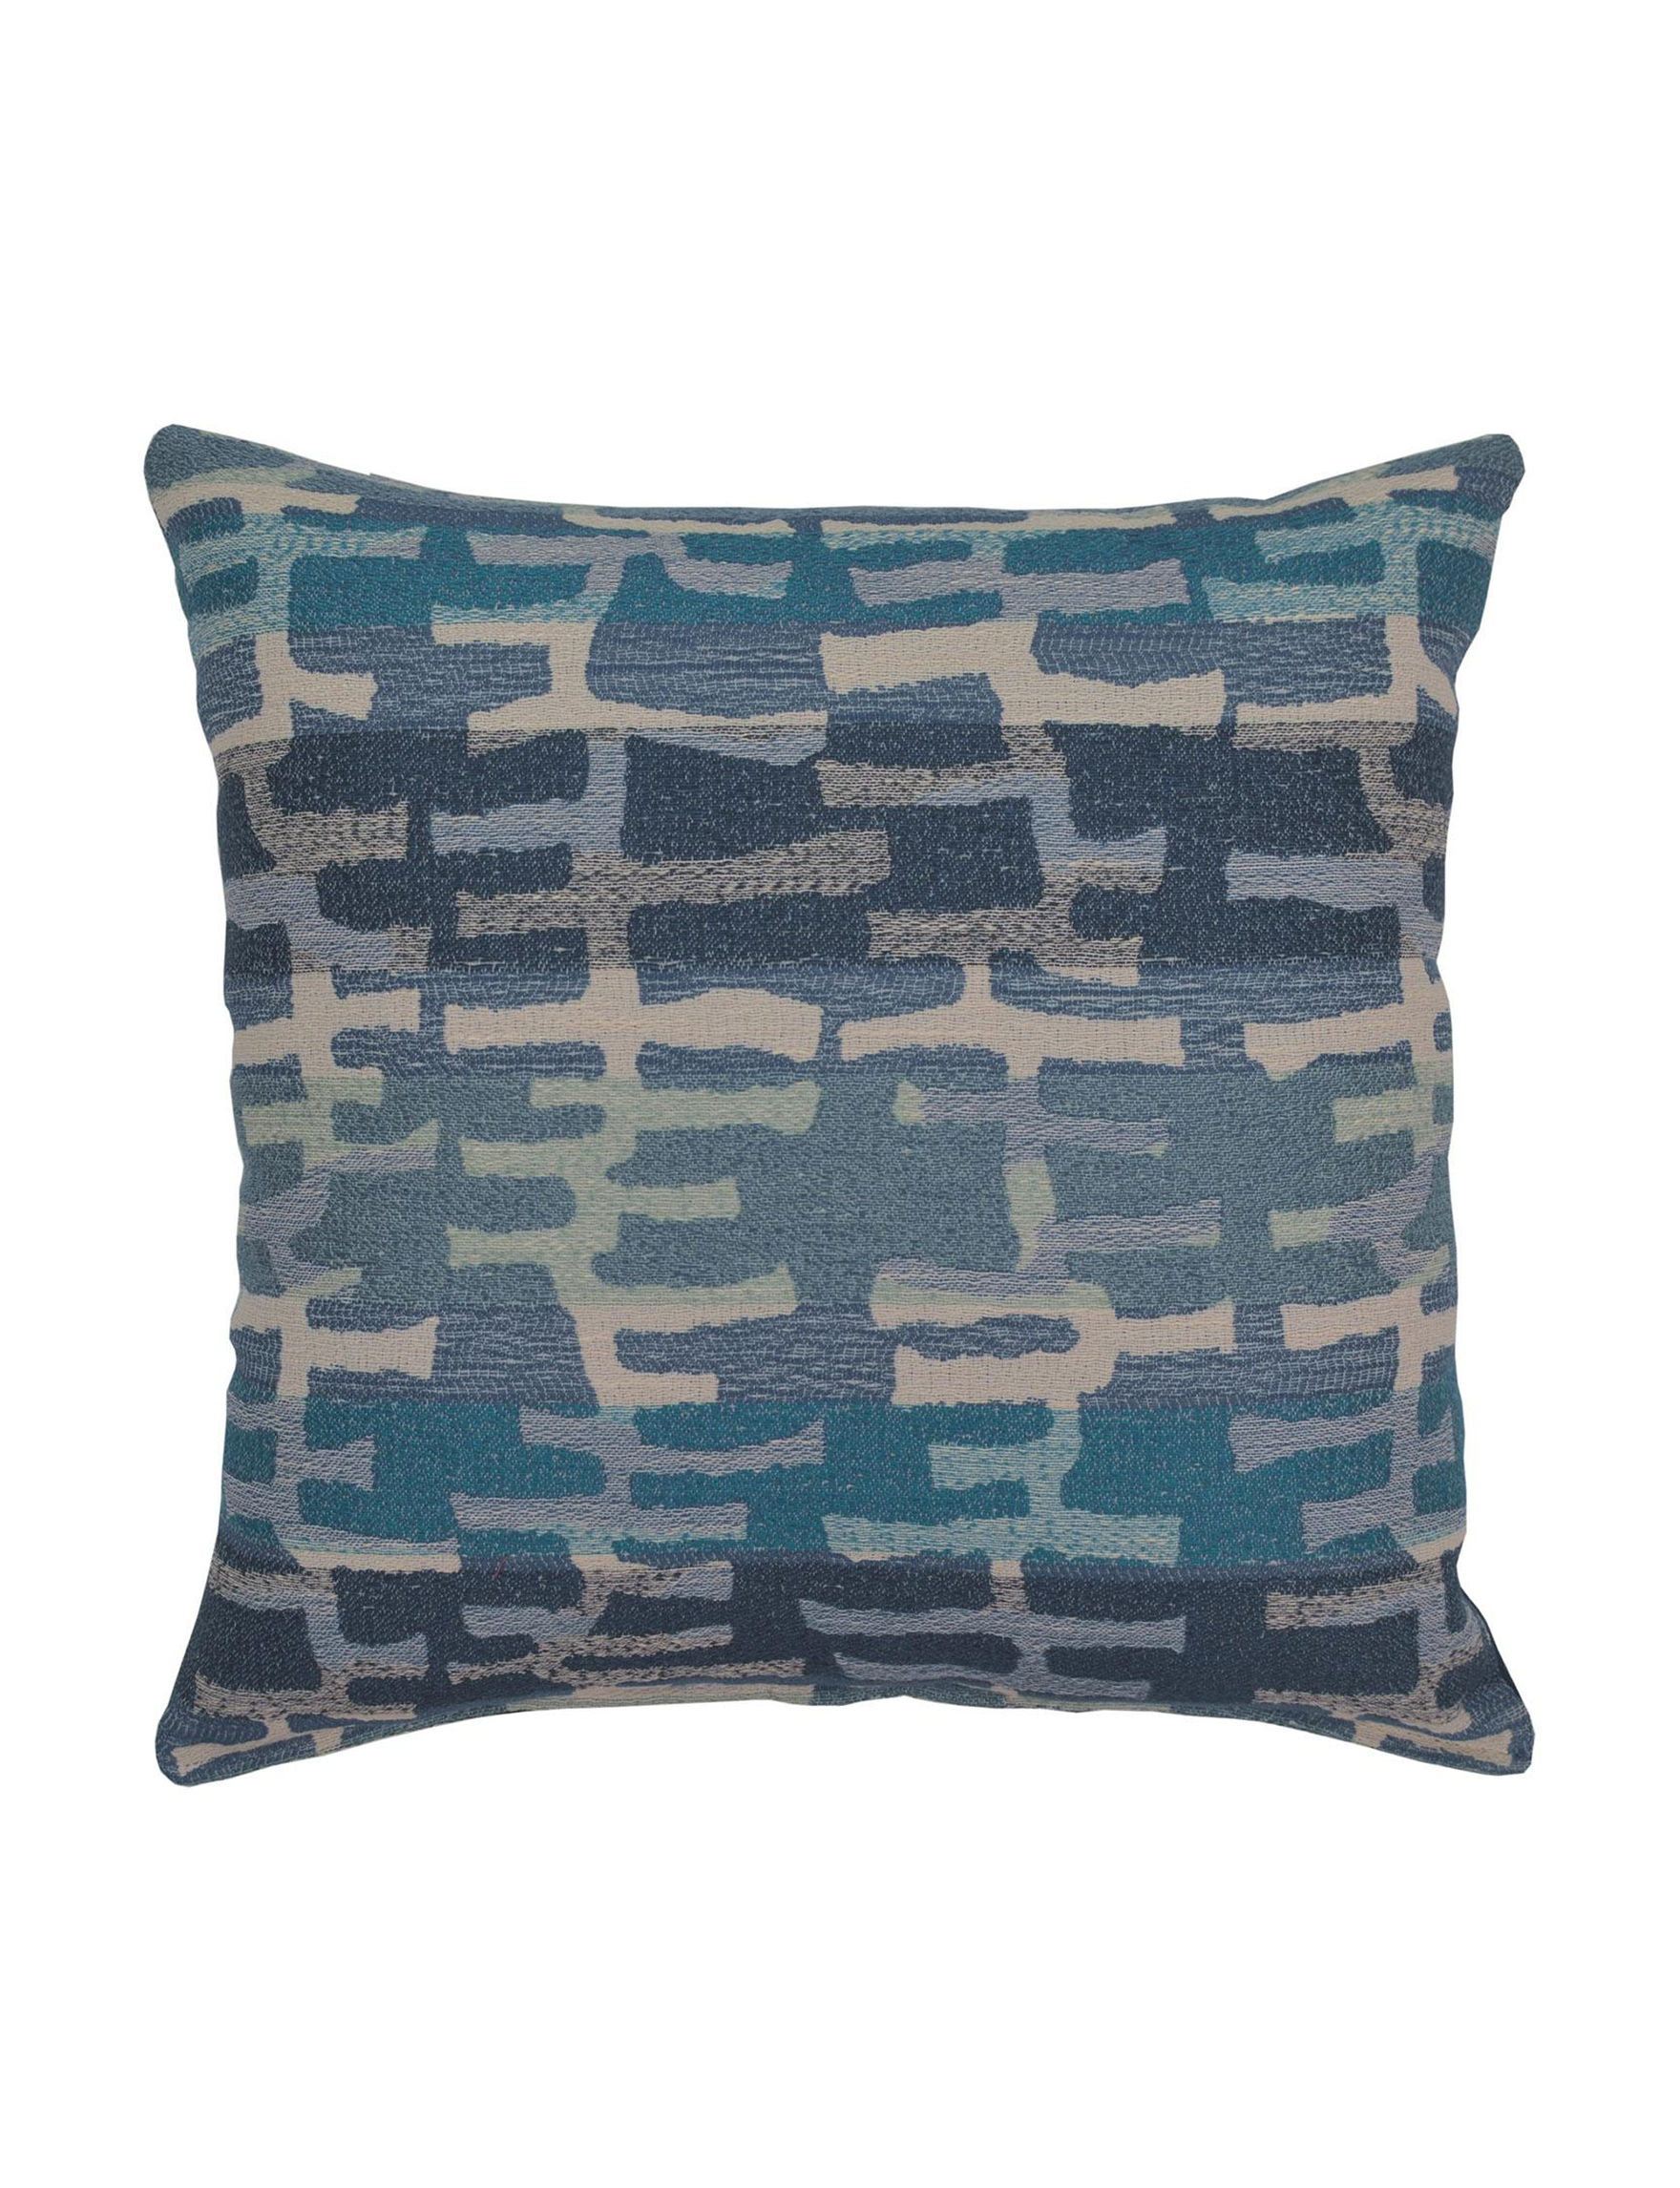 Creative Home Furnishings Blue Multi Bed Pillows Decorative Pillows